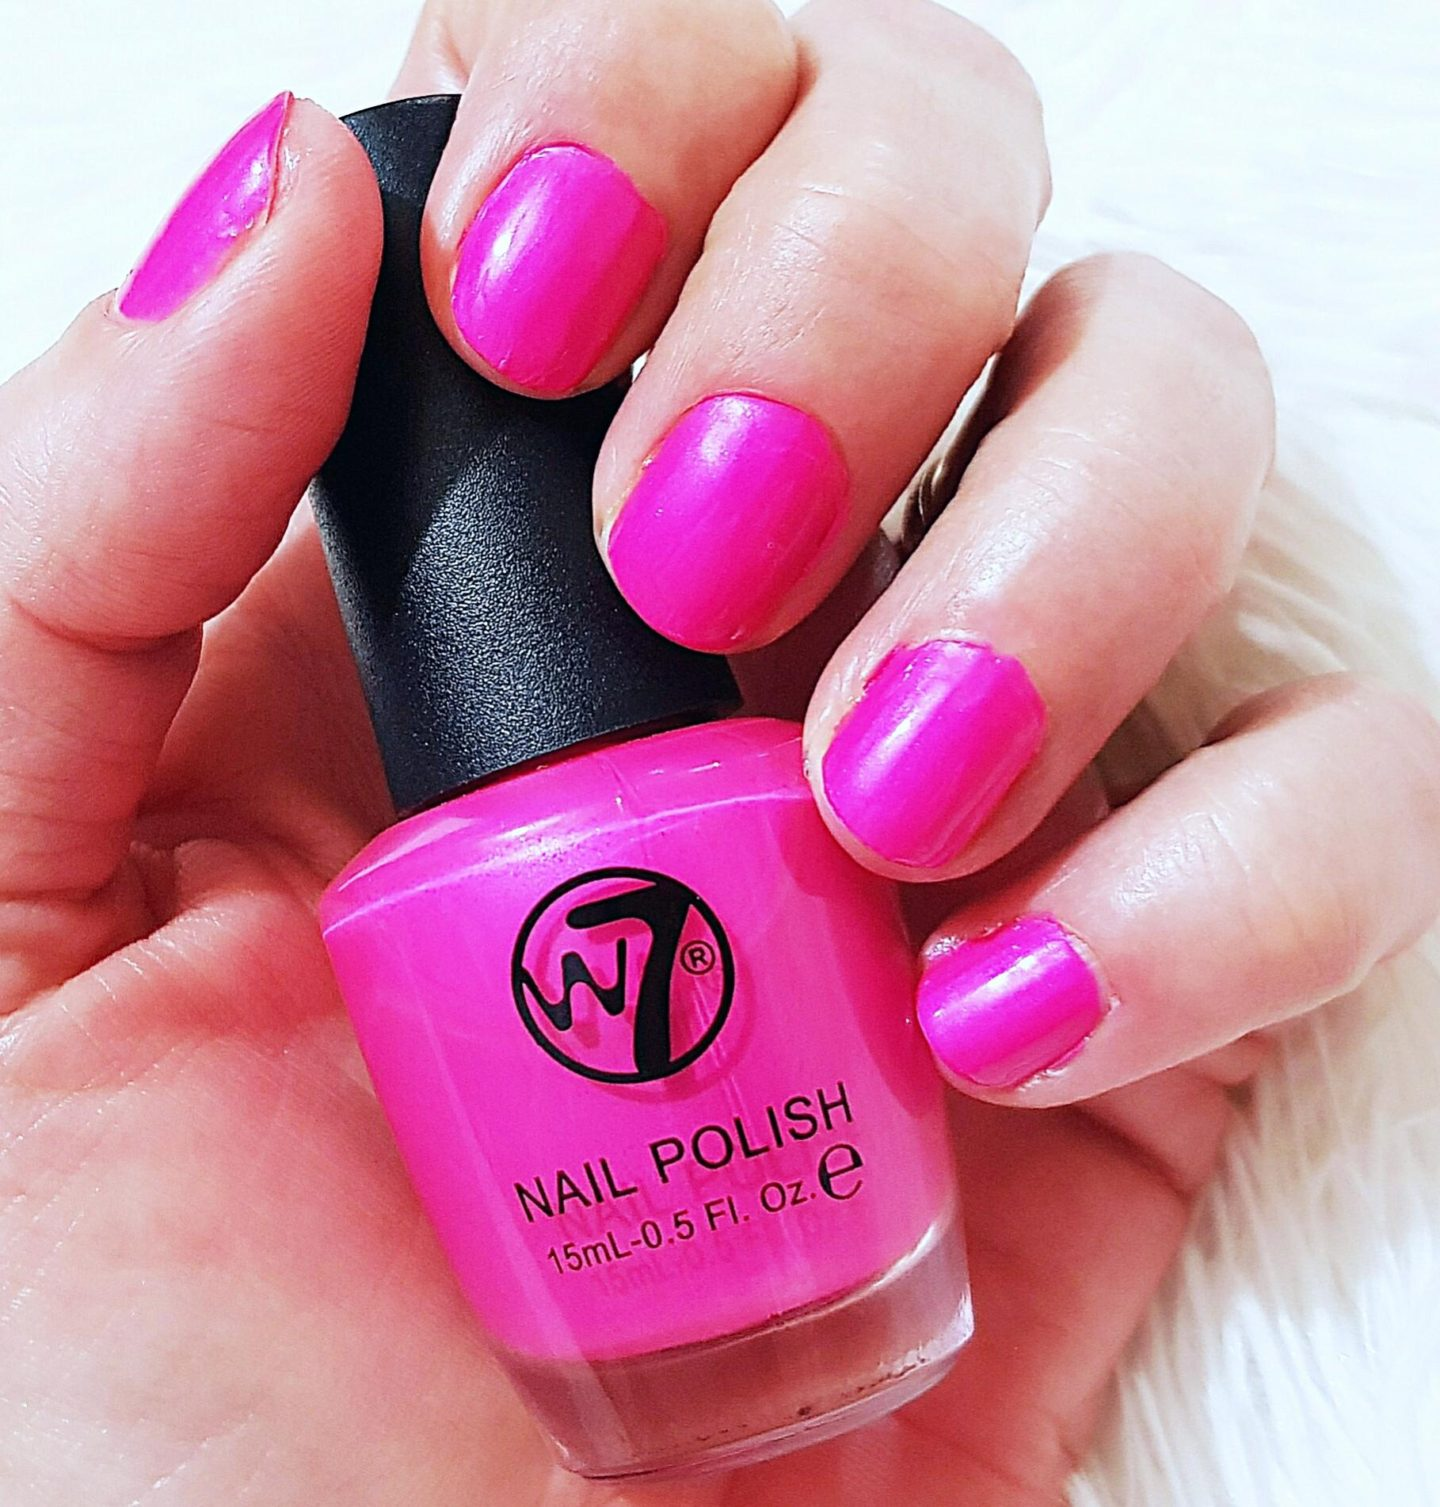 W7 Nail Polish in shade Fluorescent Pink